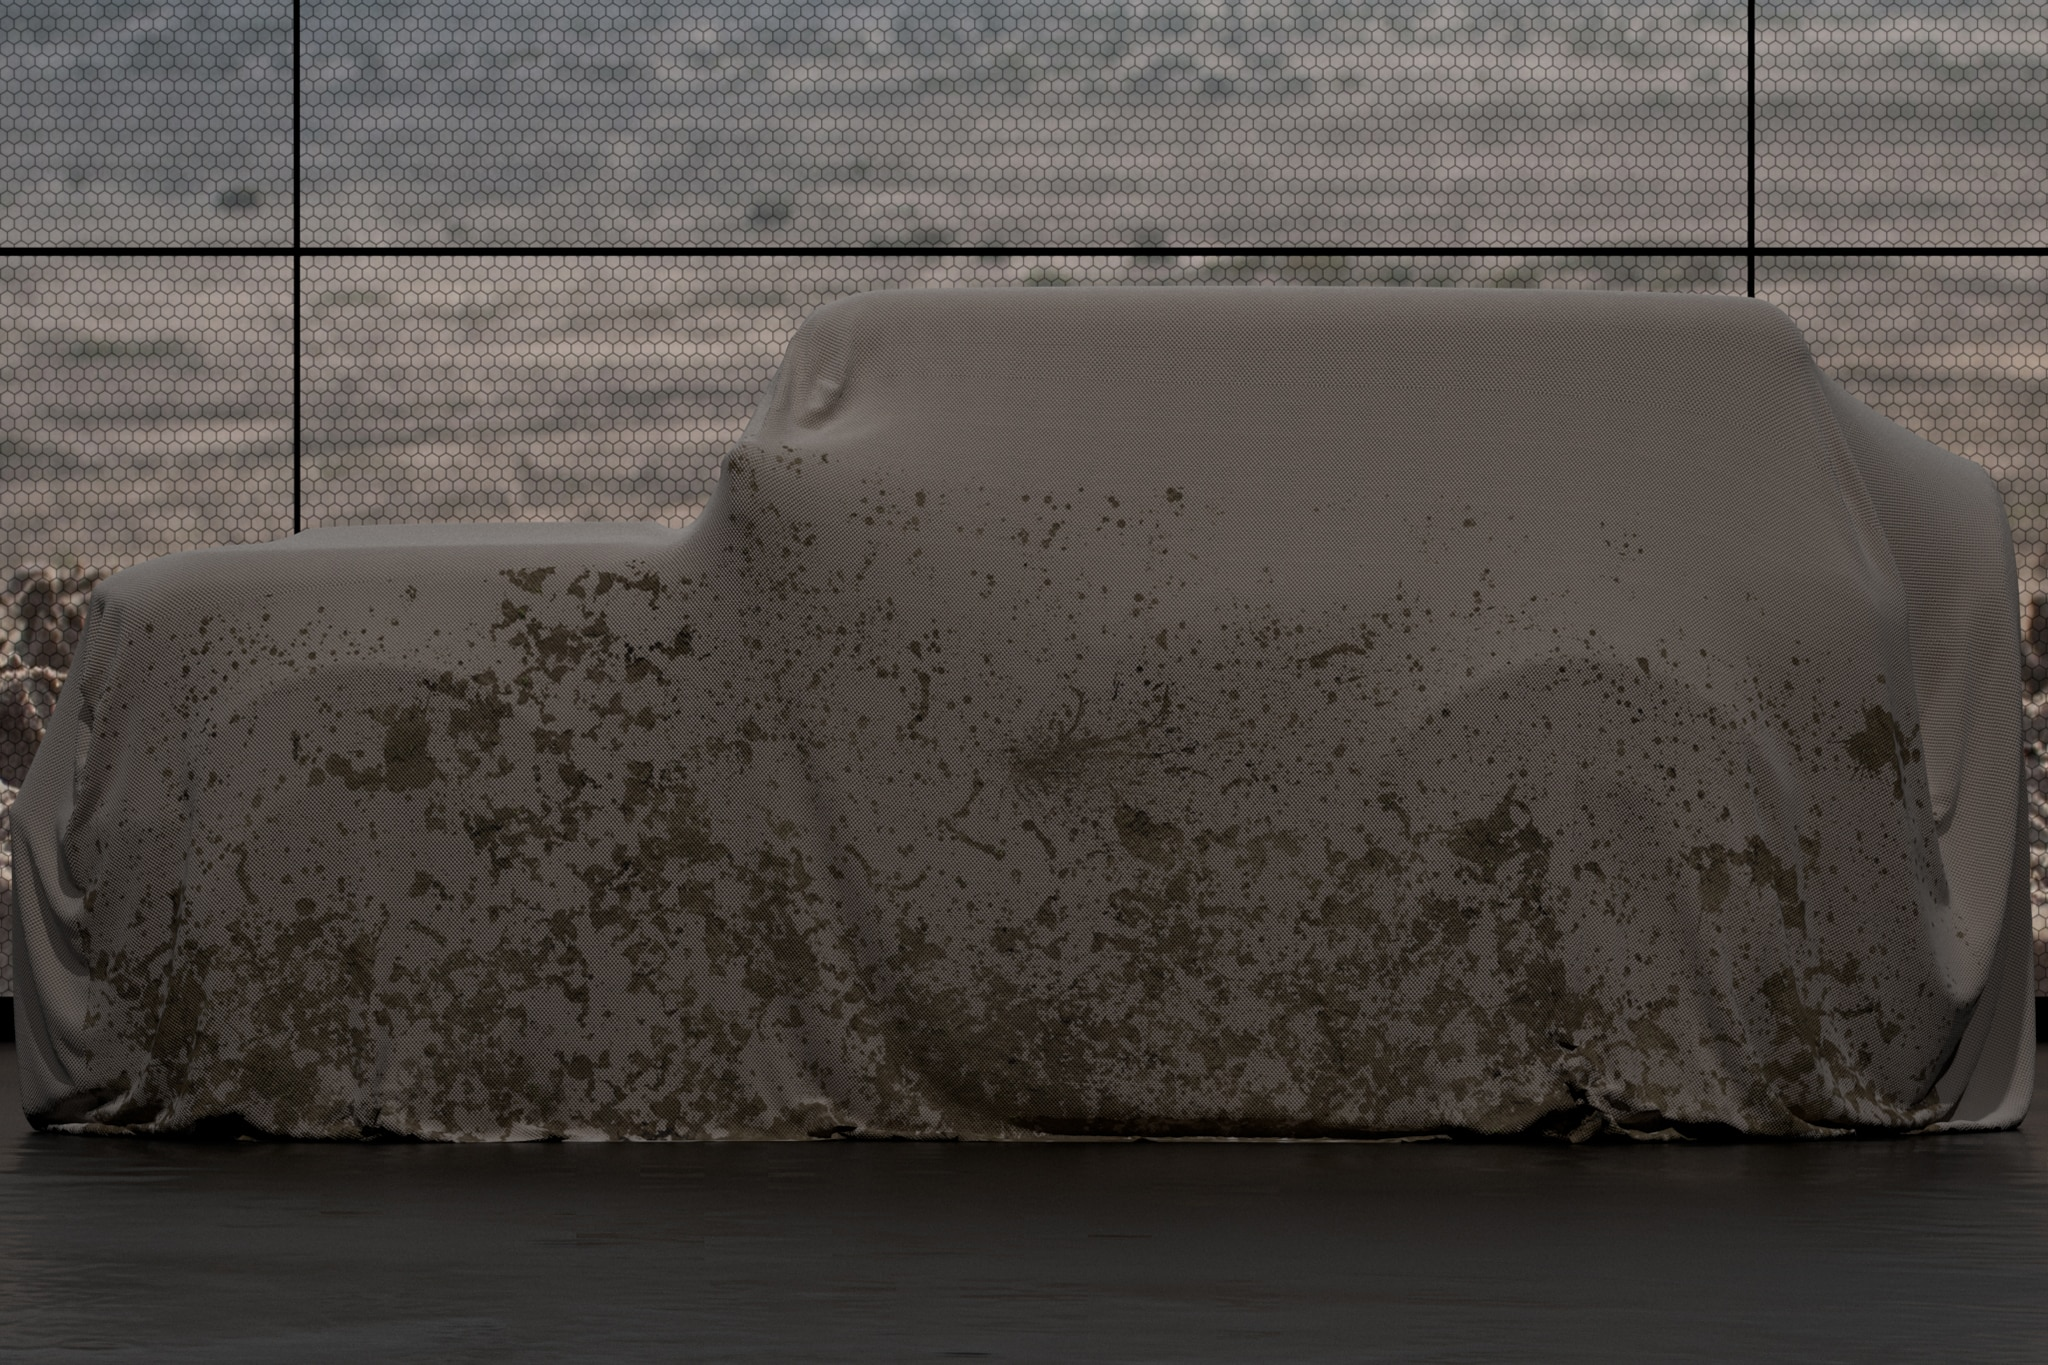 Ford touts new product line, teases new unnamed, off-road small utility vehicle